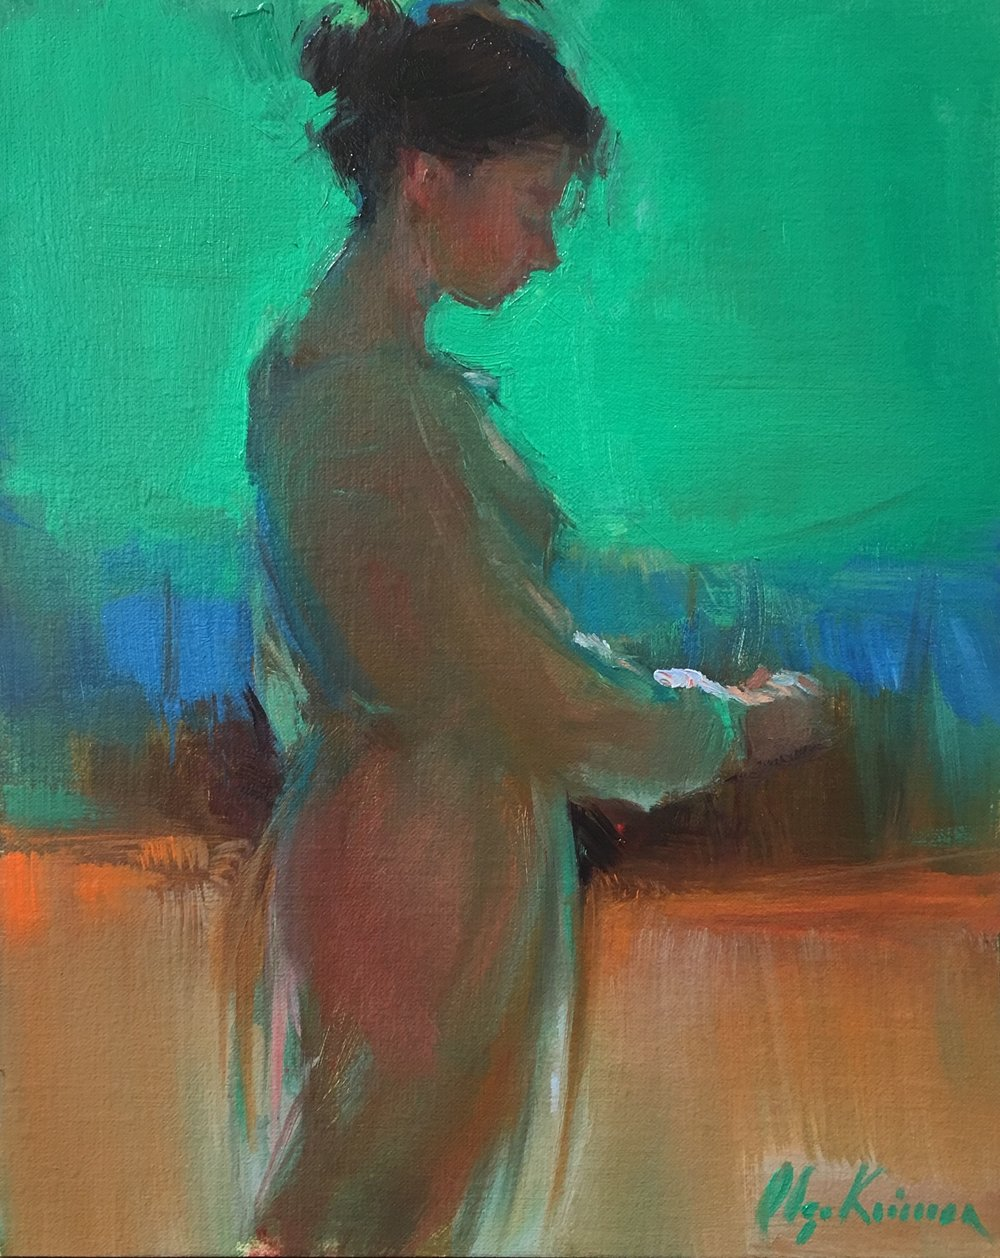 Glow - oil, 8x10Available through Vanessa Rothe Fine Art